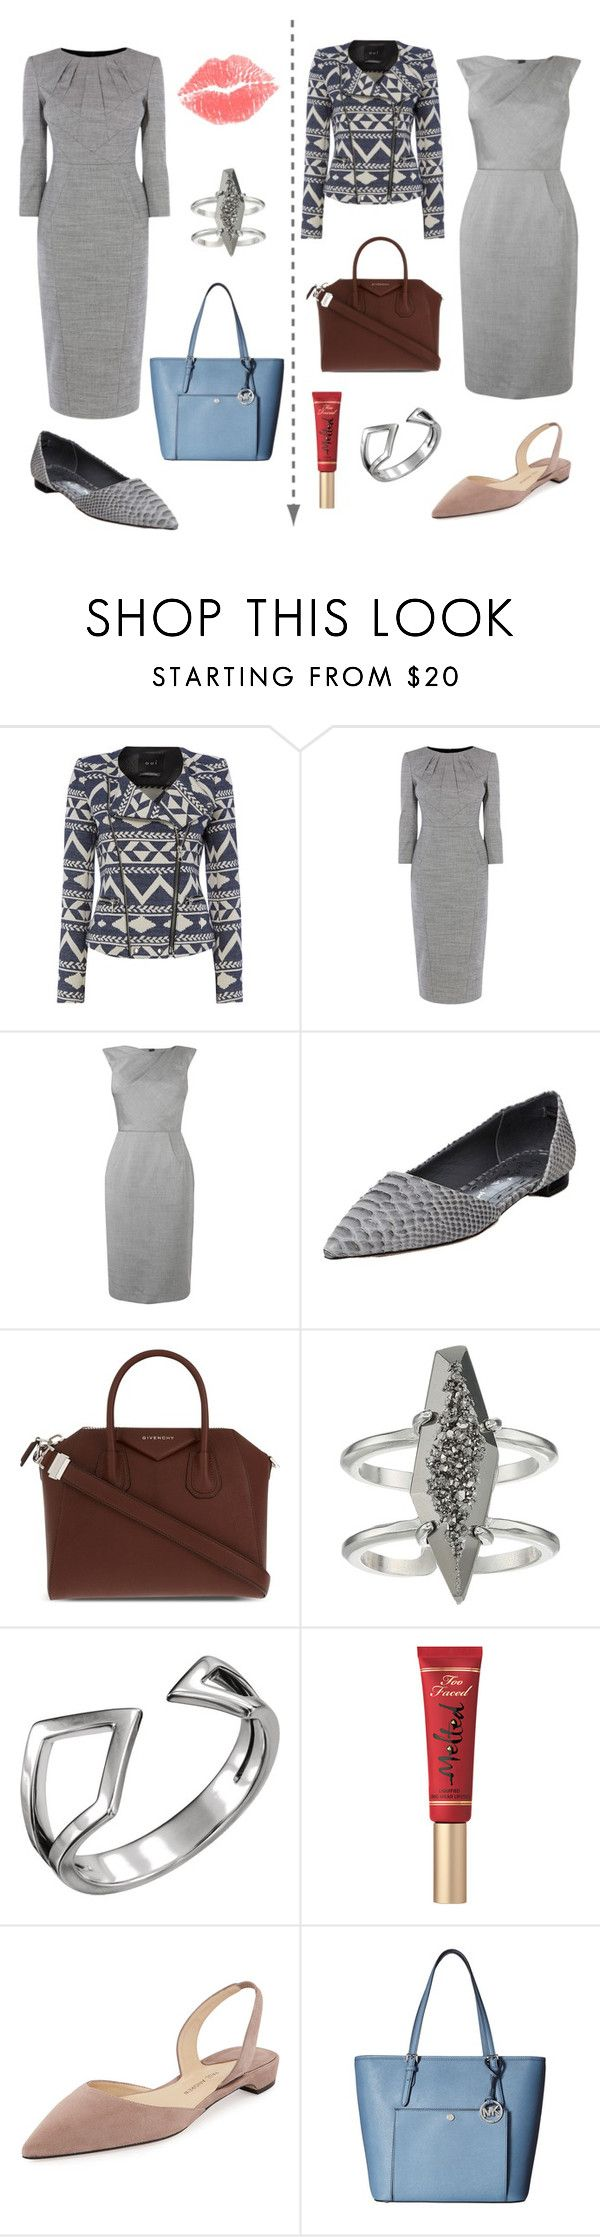 """""""SuYa_smart casual 1"""" by skugge ❤ liked on Polyvore featuring Oui, Karen Millen, L.K.Bennett, Alice + Olivia, Givenchy, Kendra Scott, Wish by Amanda Rose, Too Faced Cosmetics, Paul Andrew and MICHAEL Michael Kors"""